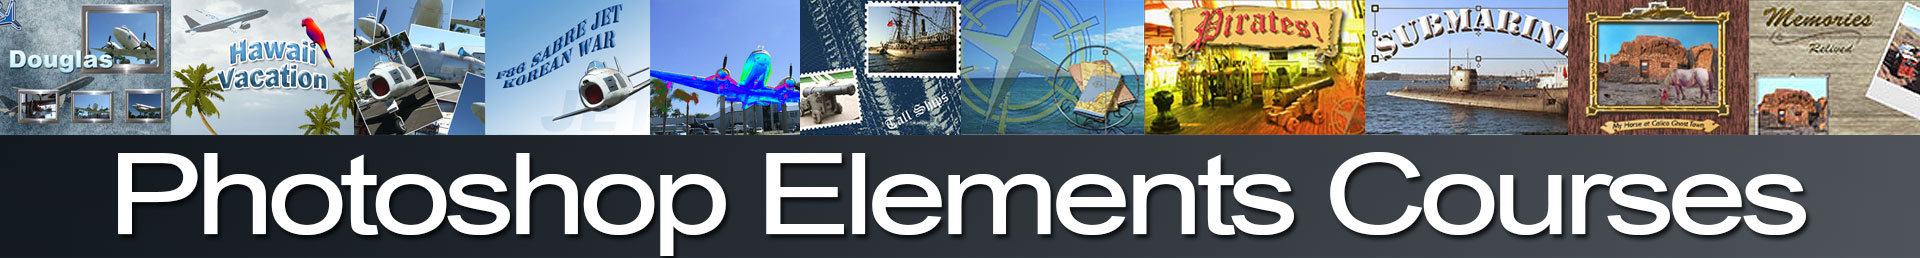 Photoshop Elements Tutorial Courses